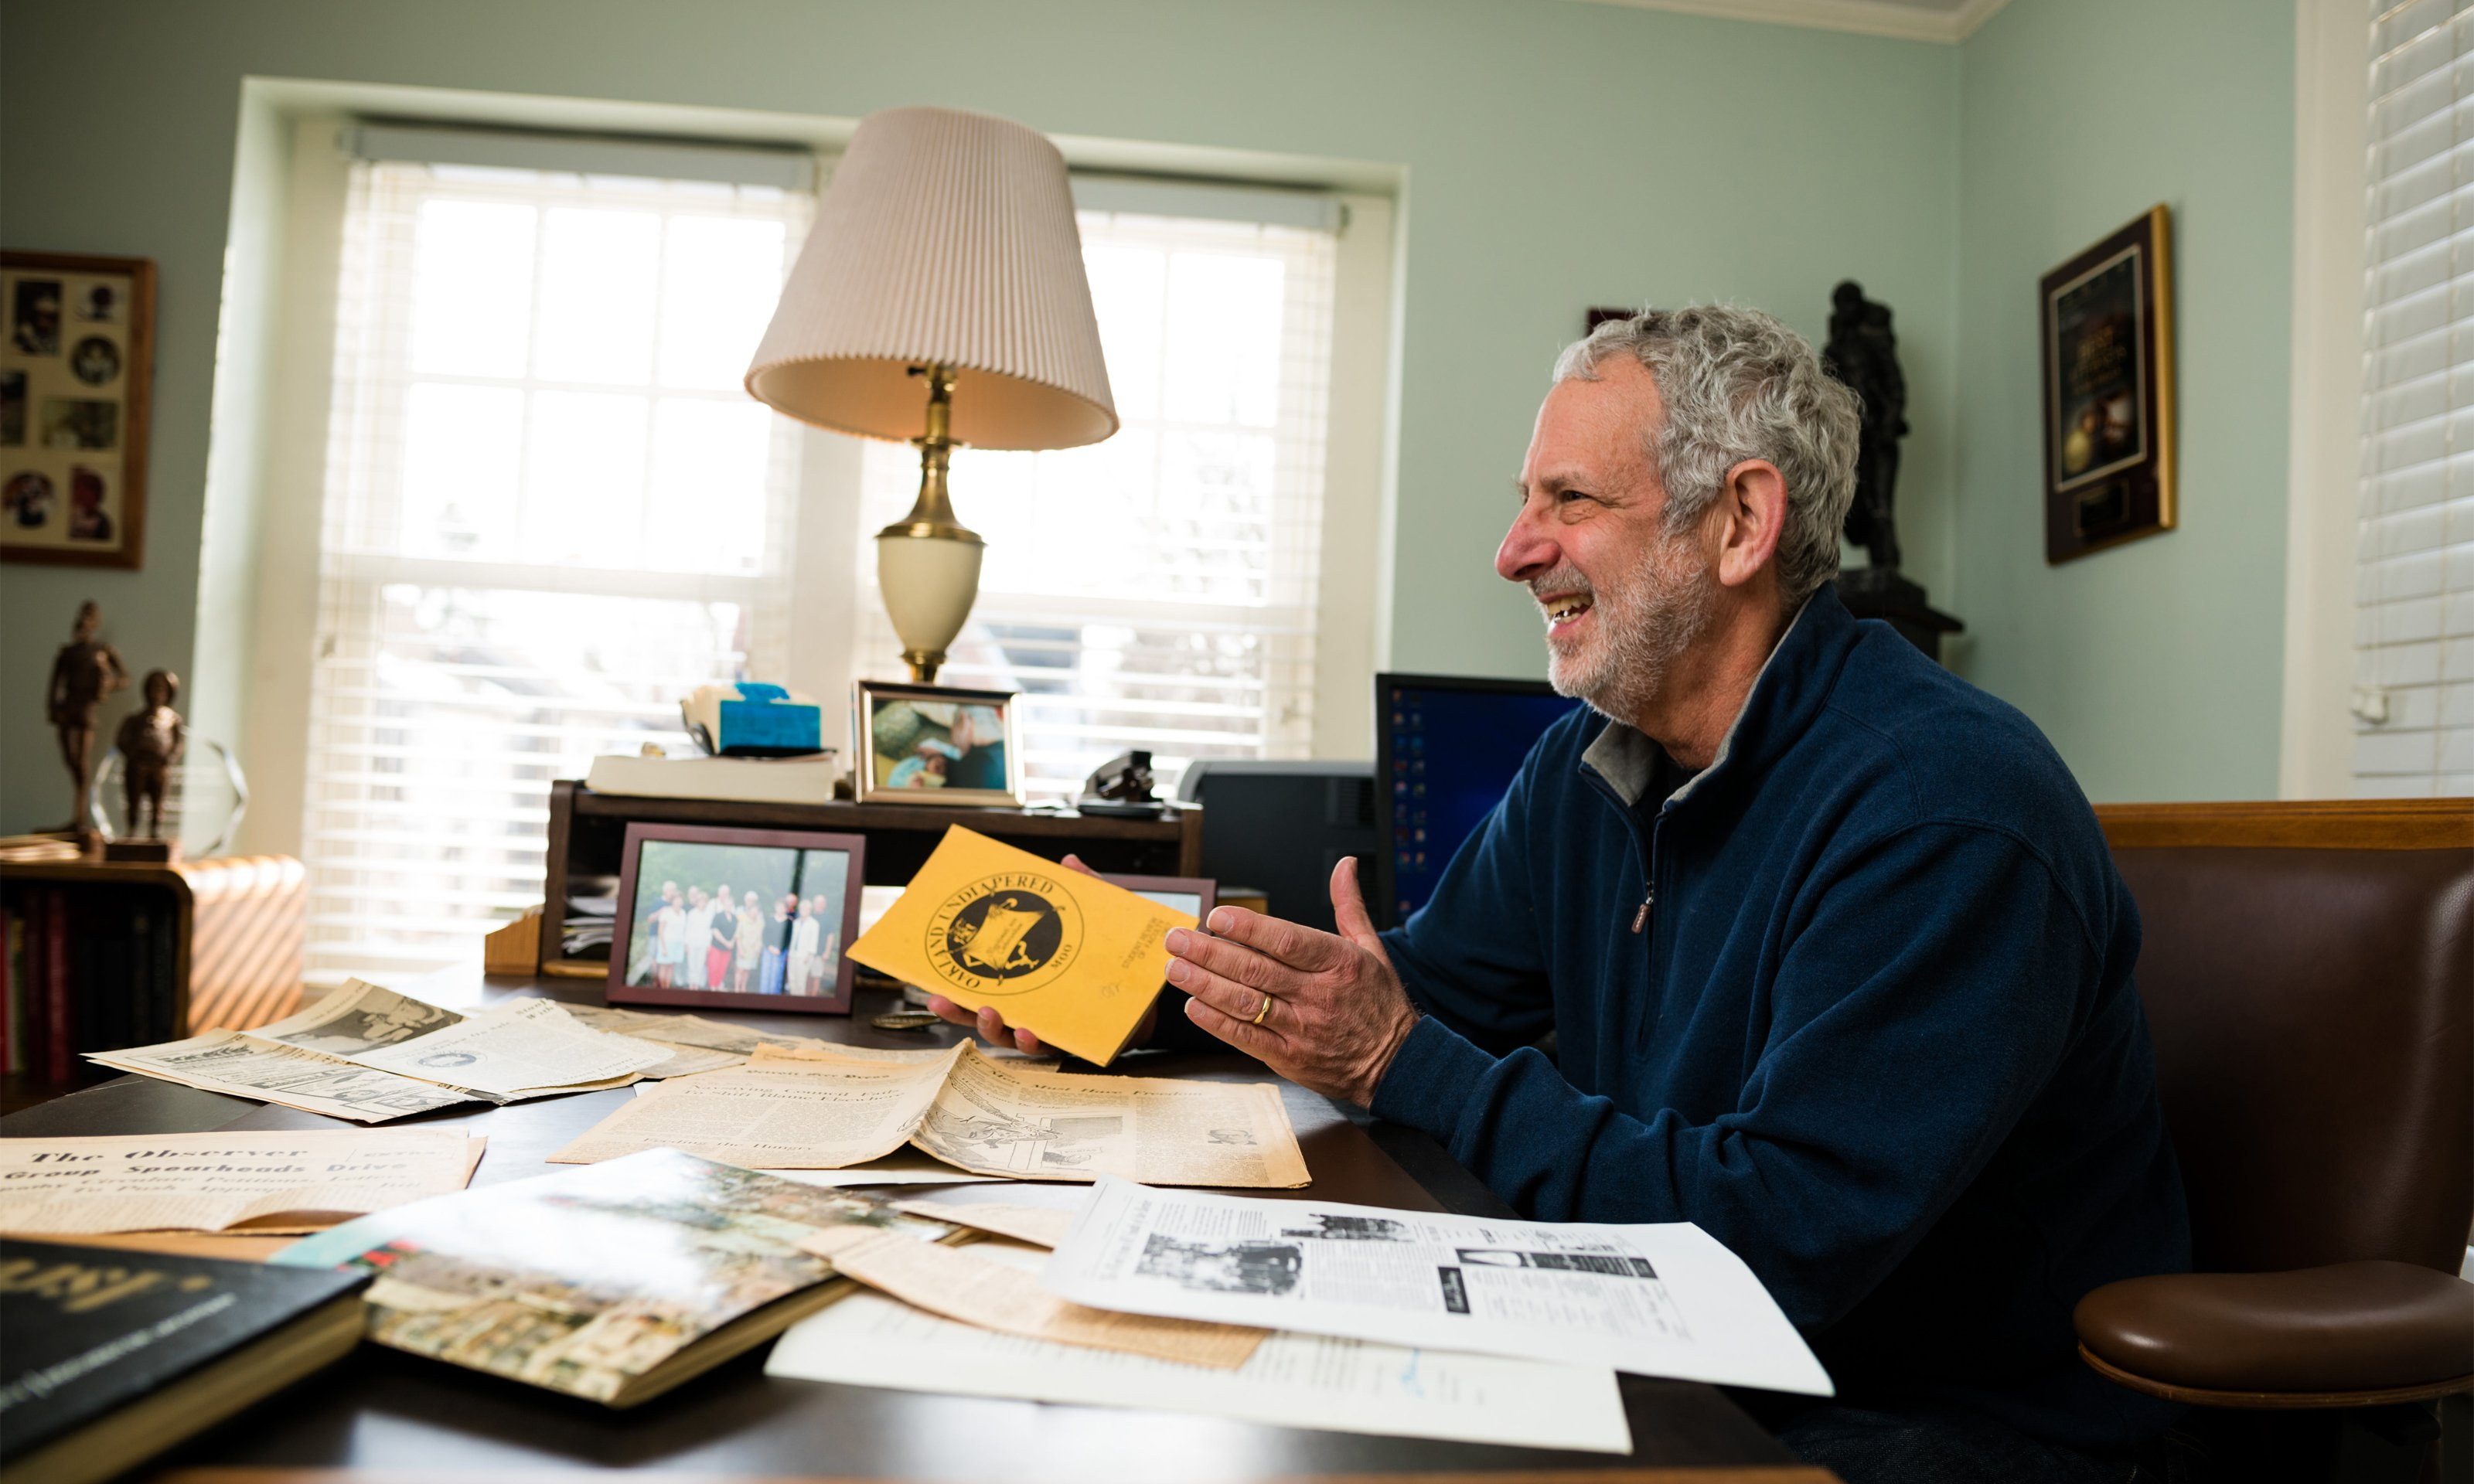 Oakland University alumnus Marty Reisig looks over papers from his days as a student